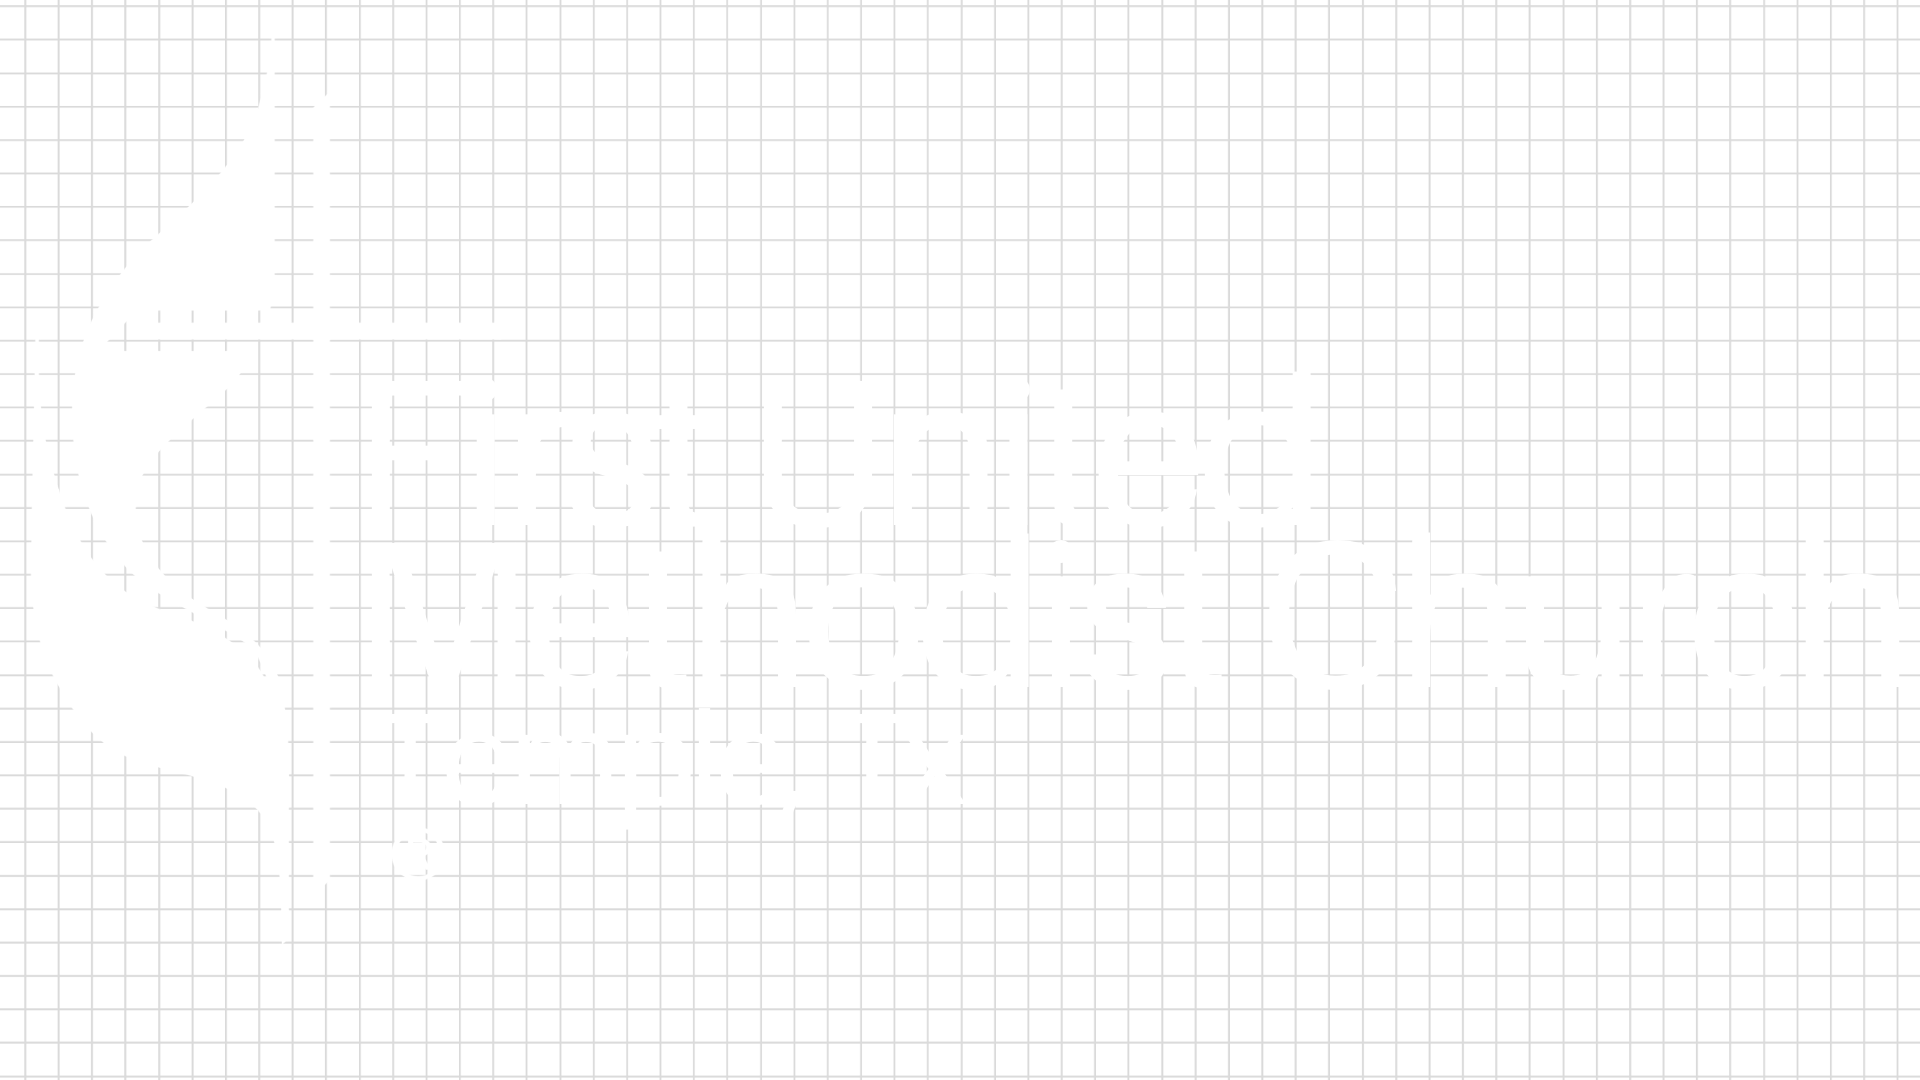 First United Methodist Church of Temple, Temple, TX